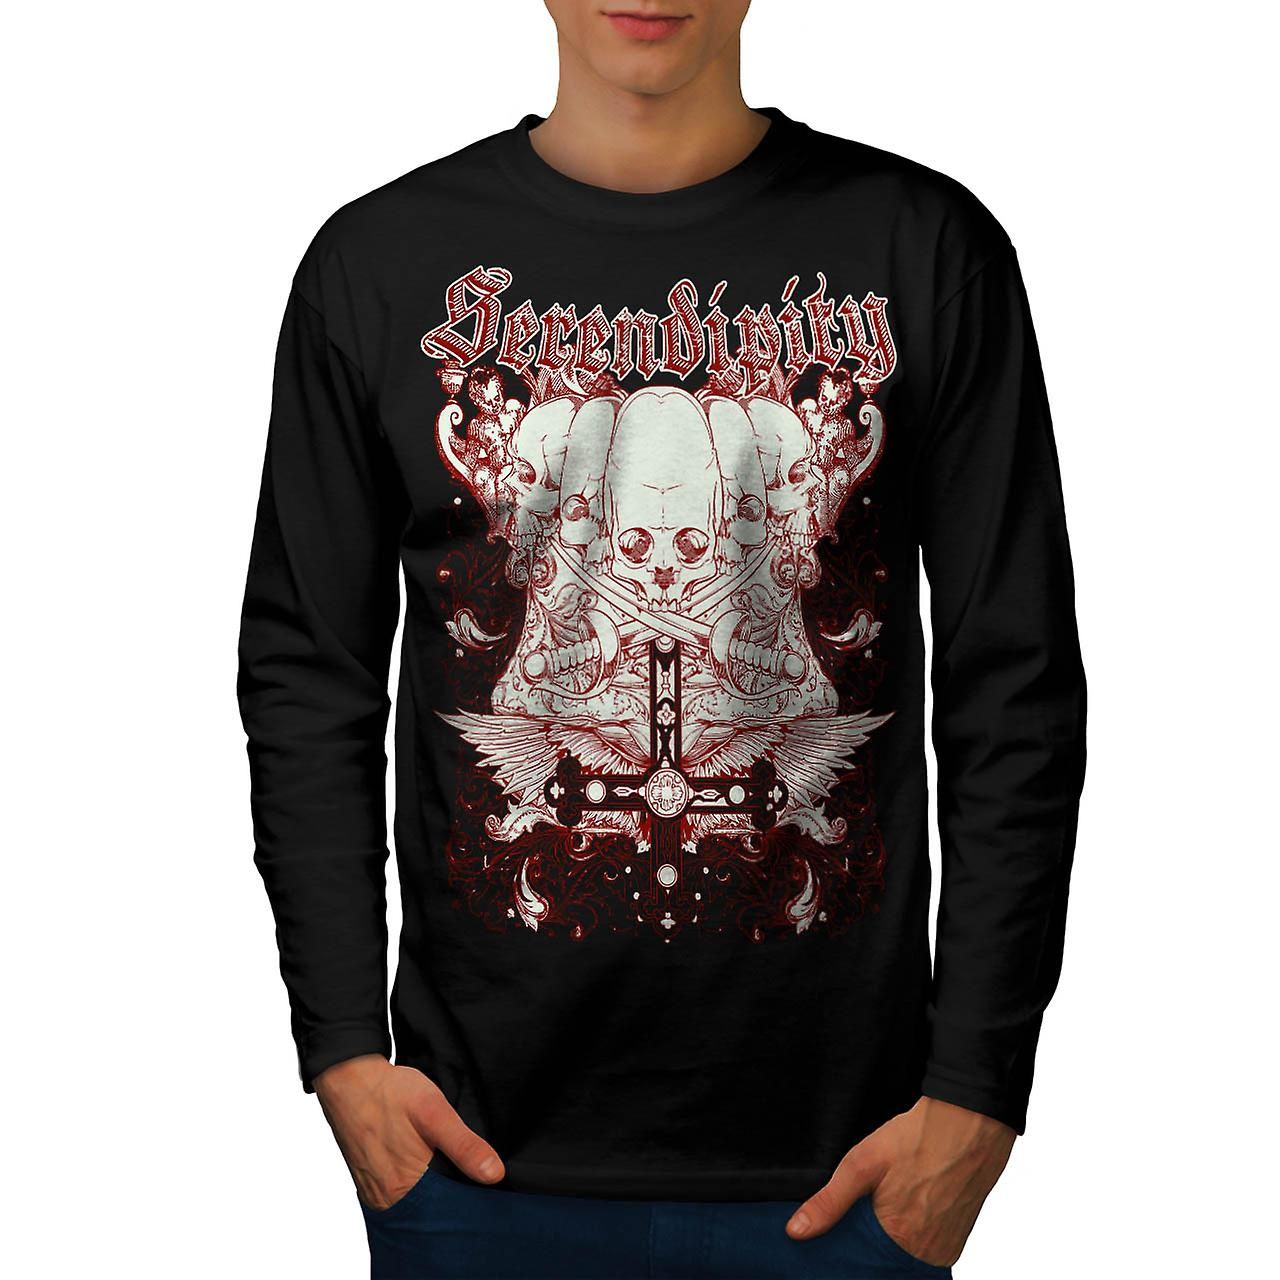 Serendipity Tombstone Grave Yard Men Black Long Sleeve T-shirt | Wellcoda